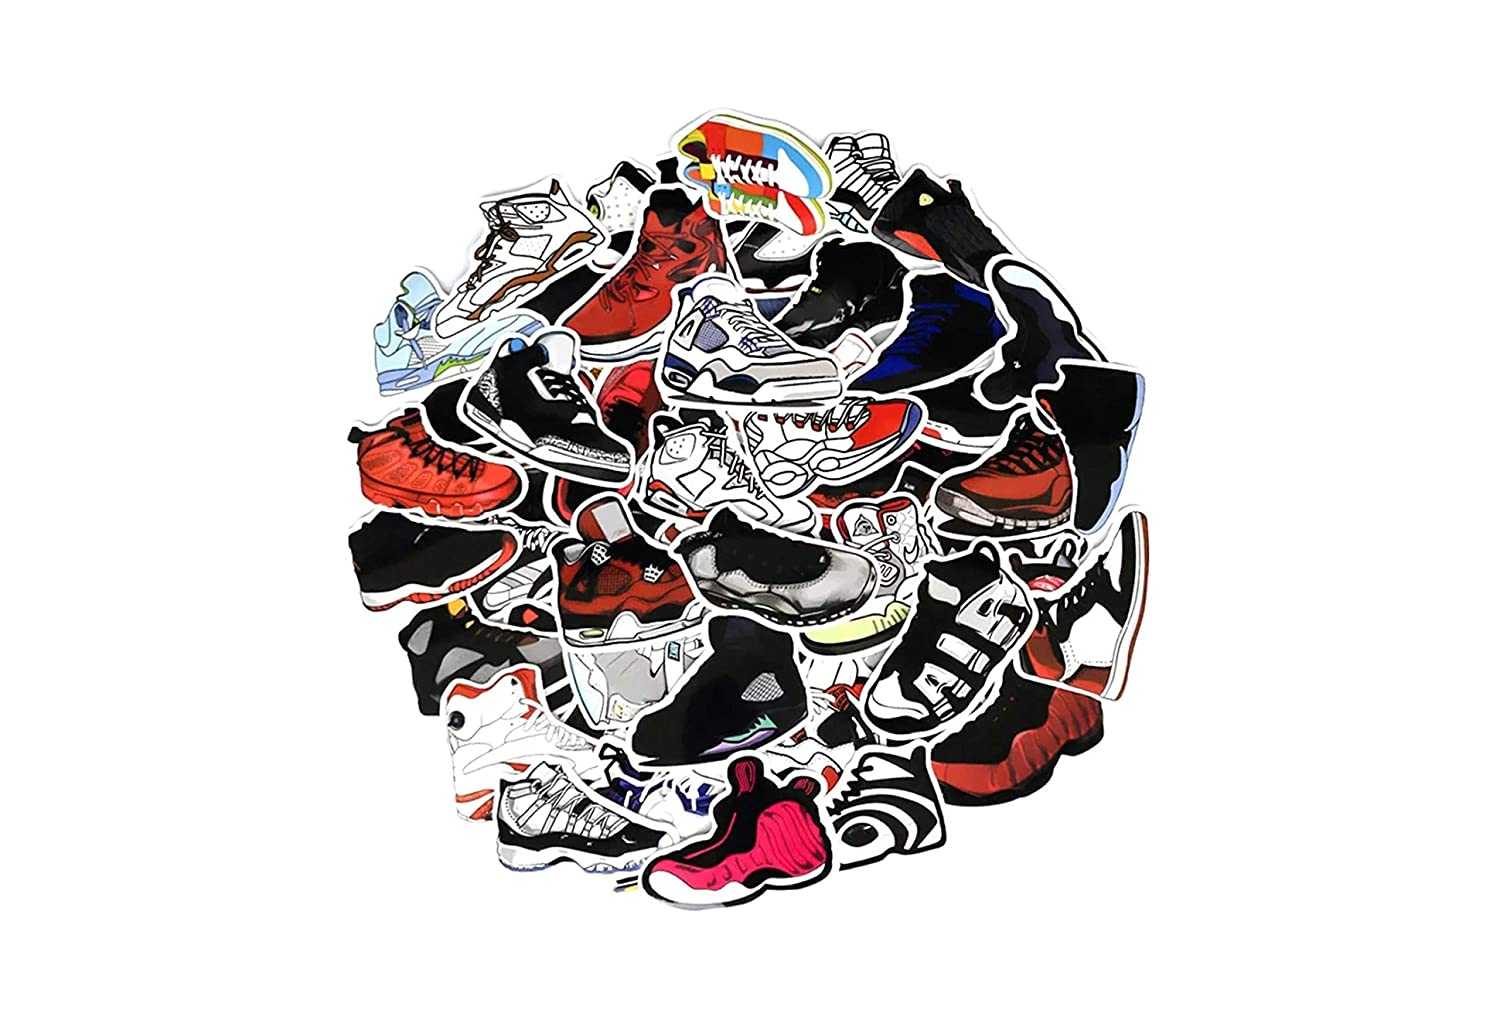 Amazon com pack of 60 waterproof sneaker stickers for car laptop luggage skateboard graffiti leaving no residue computers accessories